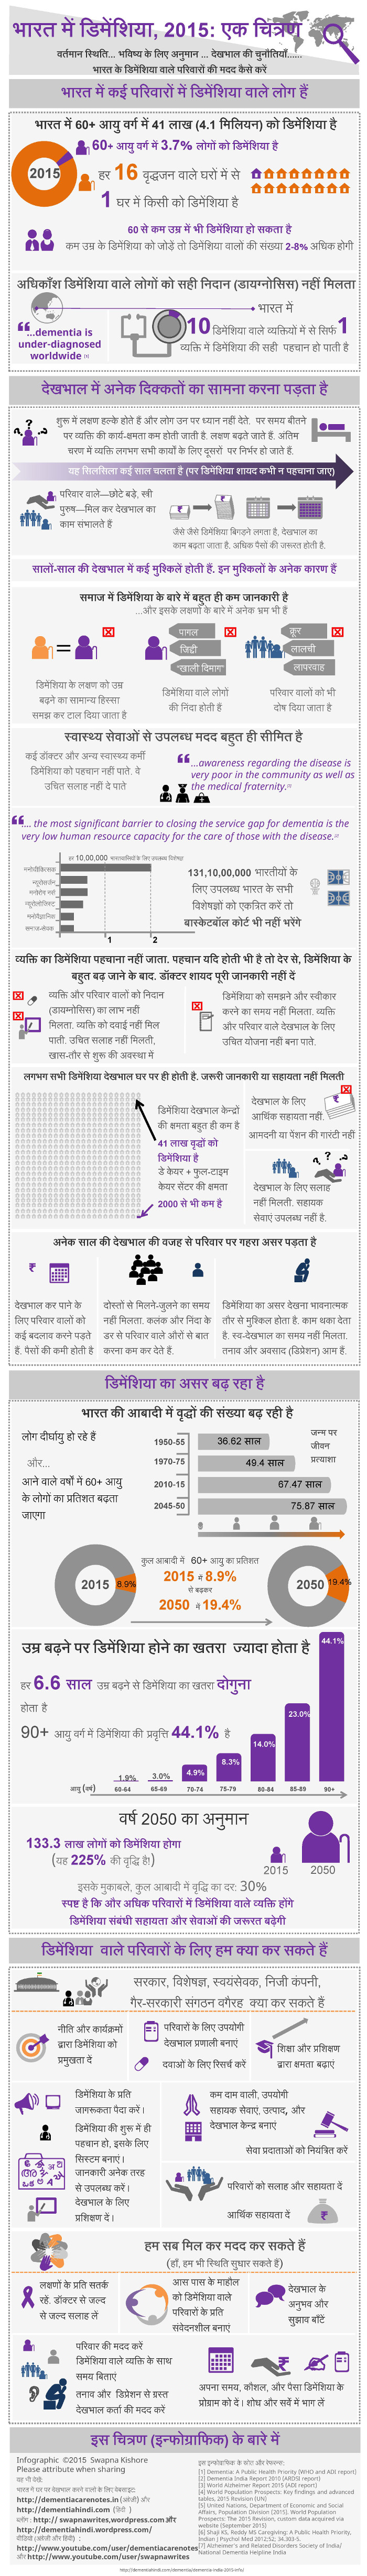 Dementia in India, 2015, an infographic in Hindi